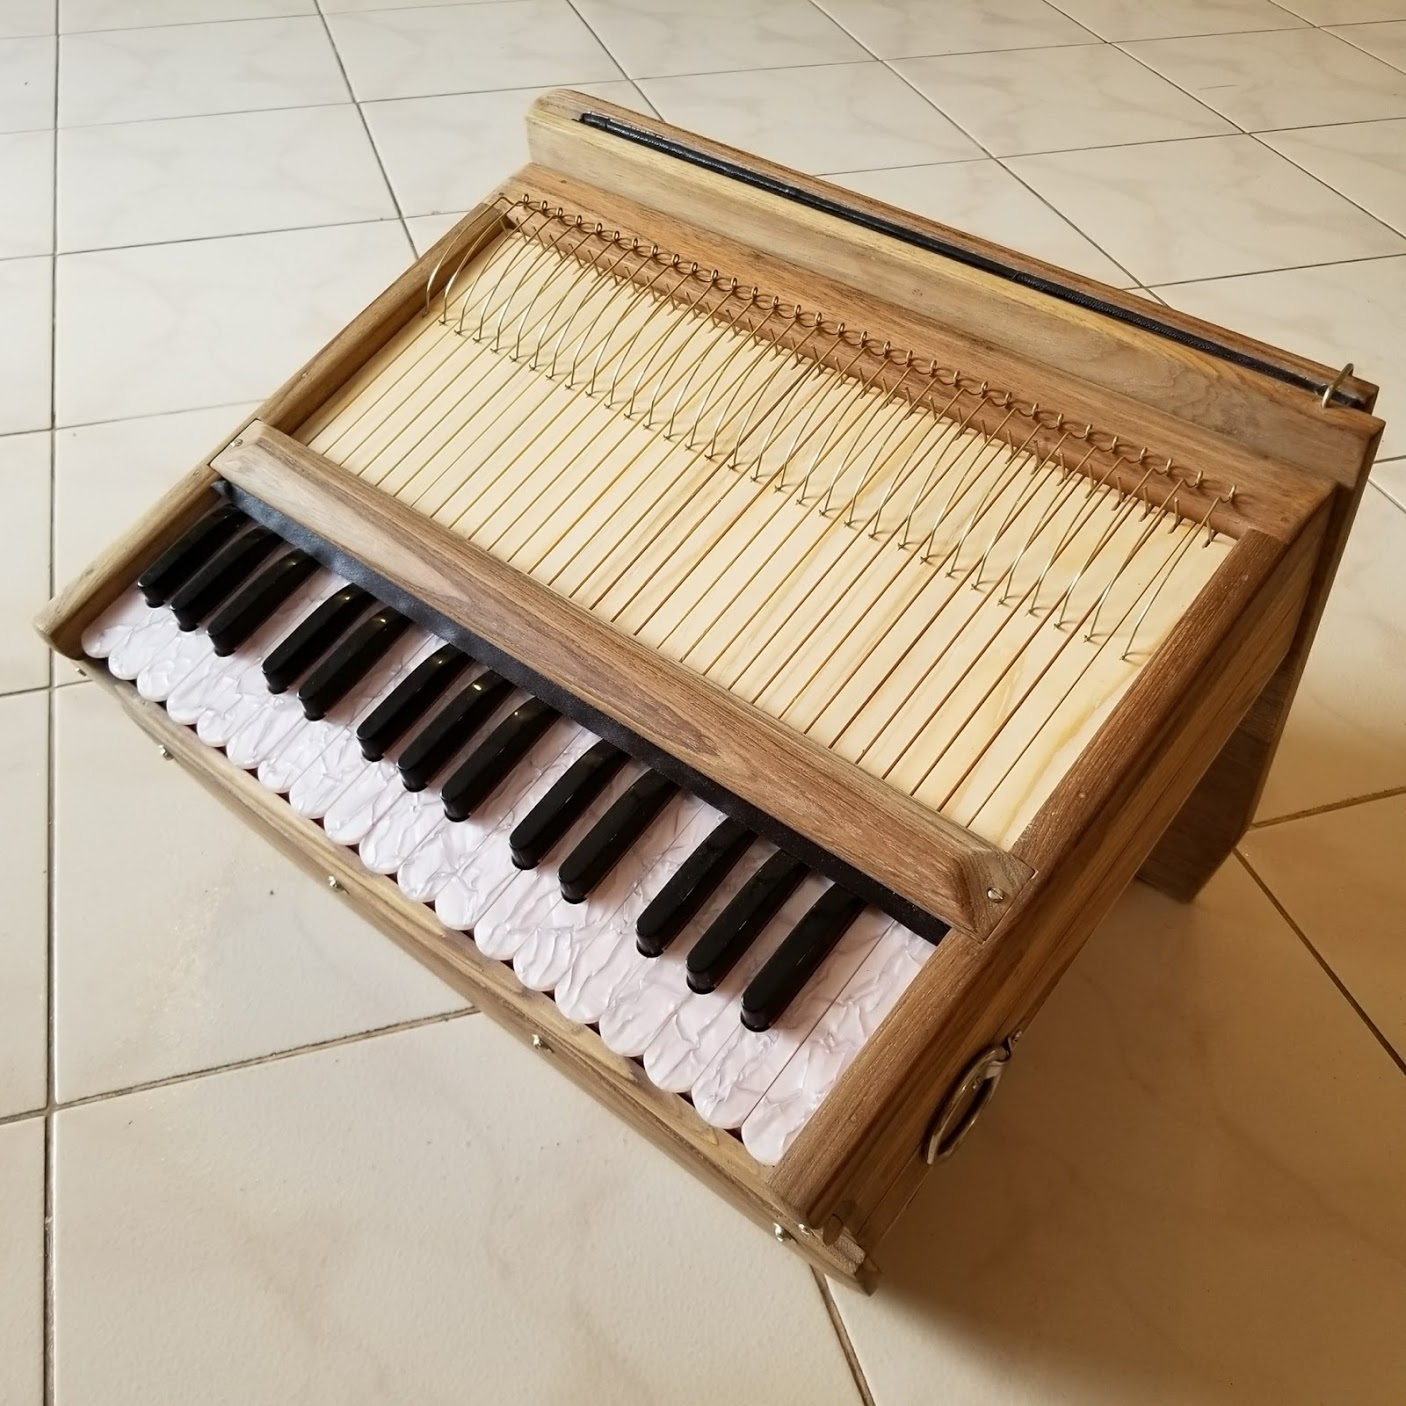 Harinam Harmonium – Germany